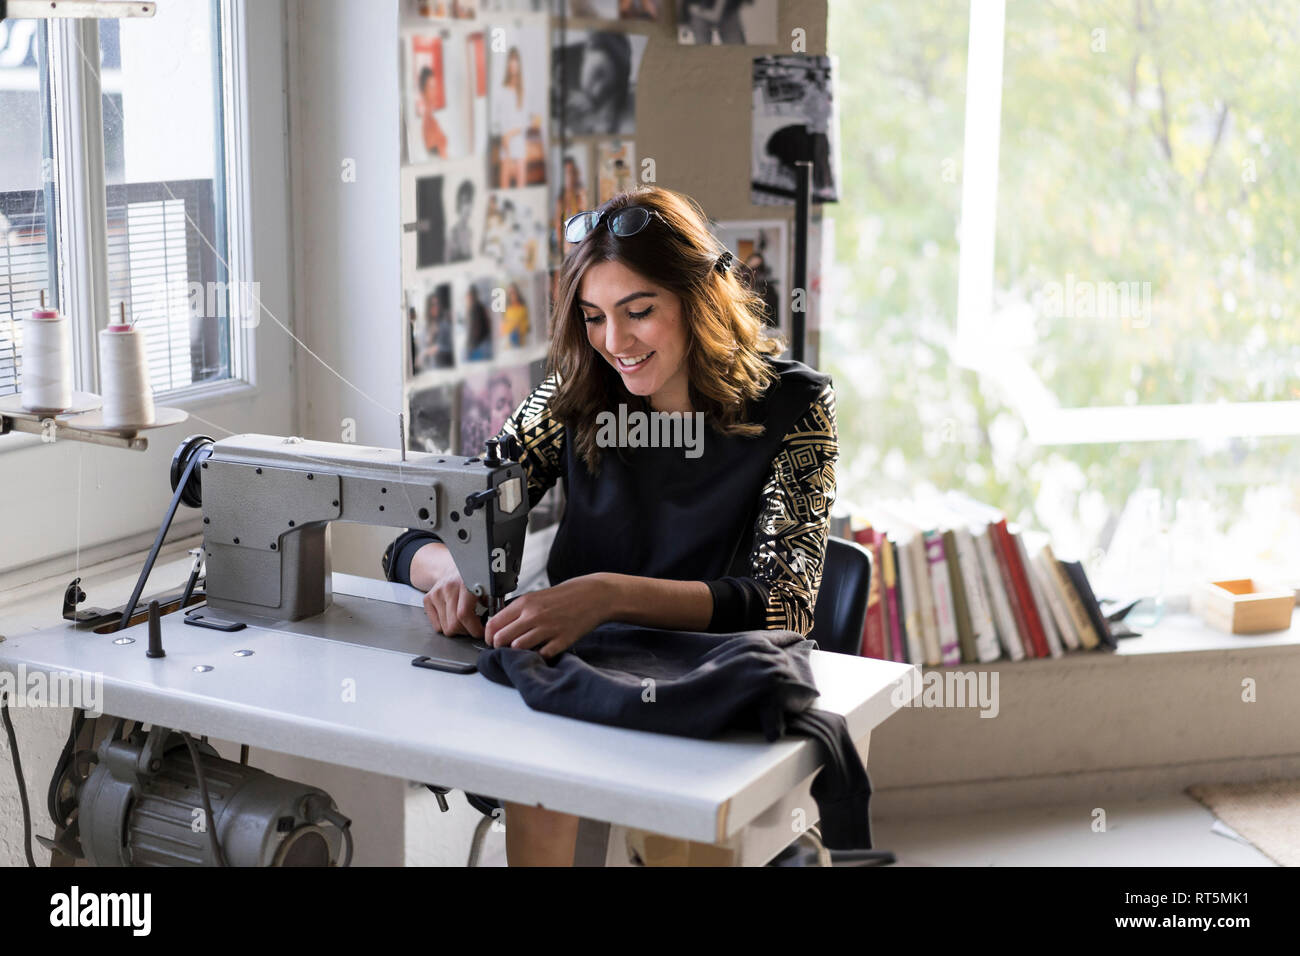 Smiling Young Fashion Designer Using Sewing Machine In Her Atelier Stock Photo Alamy